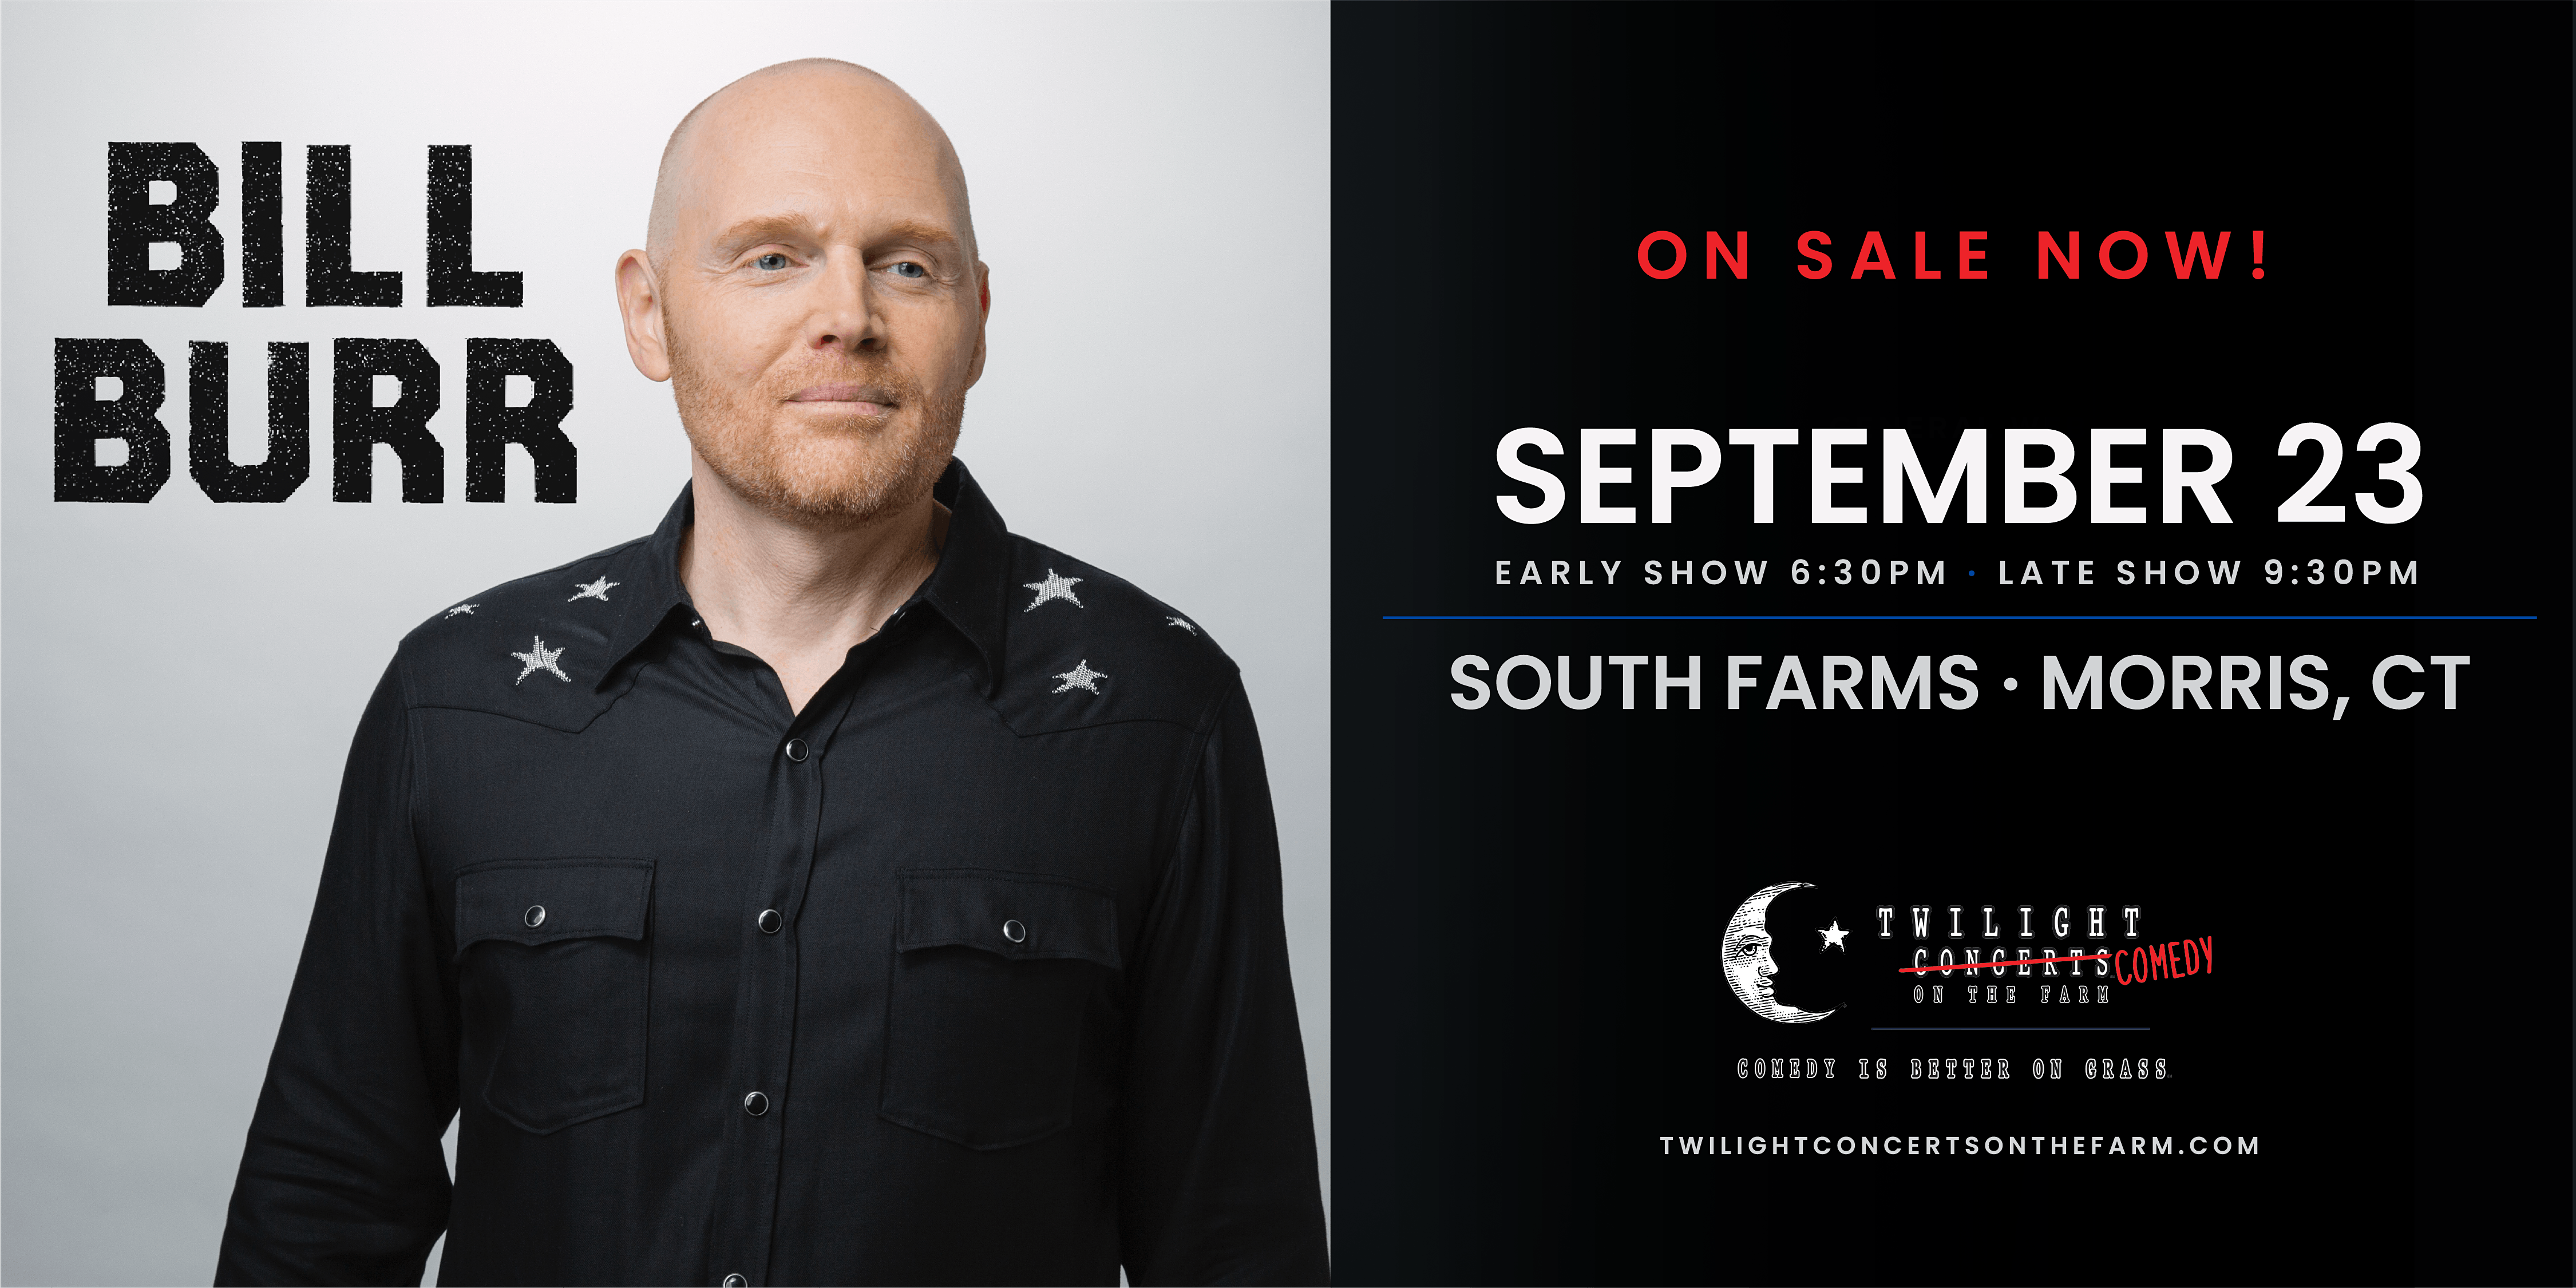 College Street Music Hall Bill Burr Early Show Tickets South Farms Morris Ct September 23rd 2020